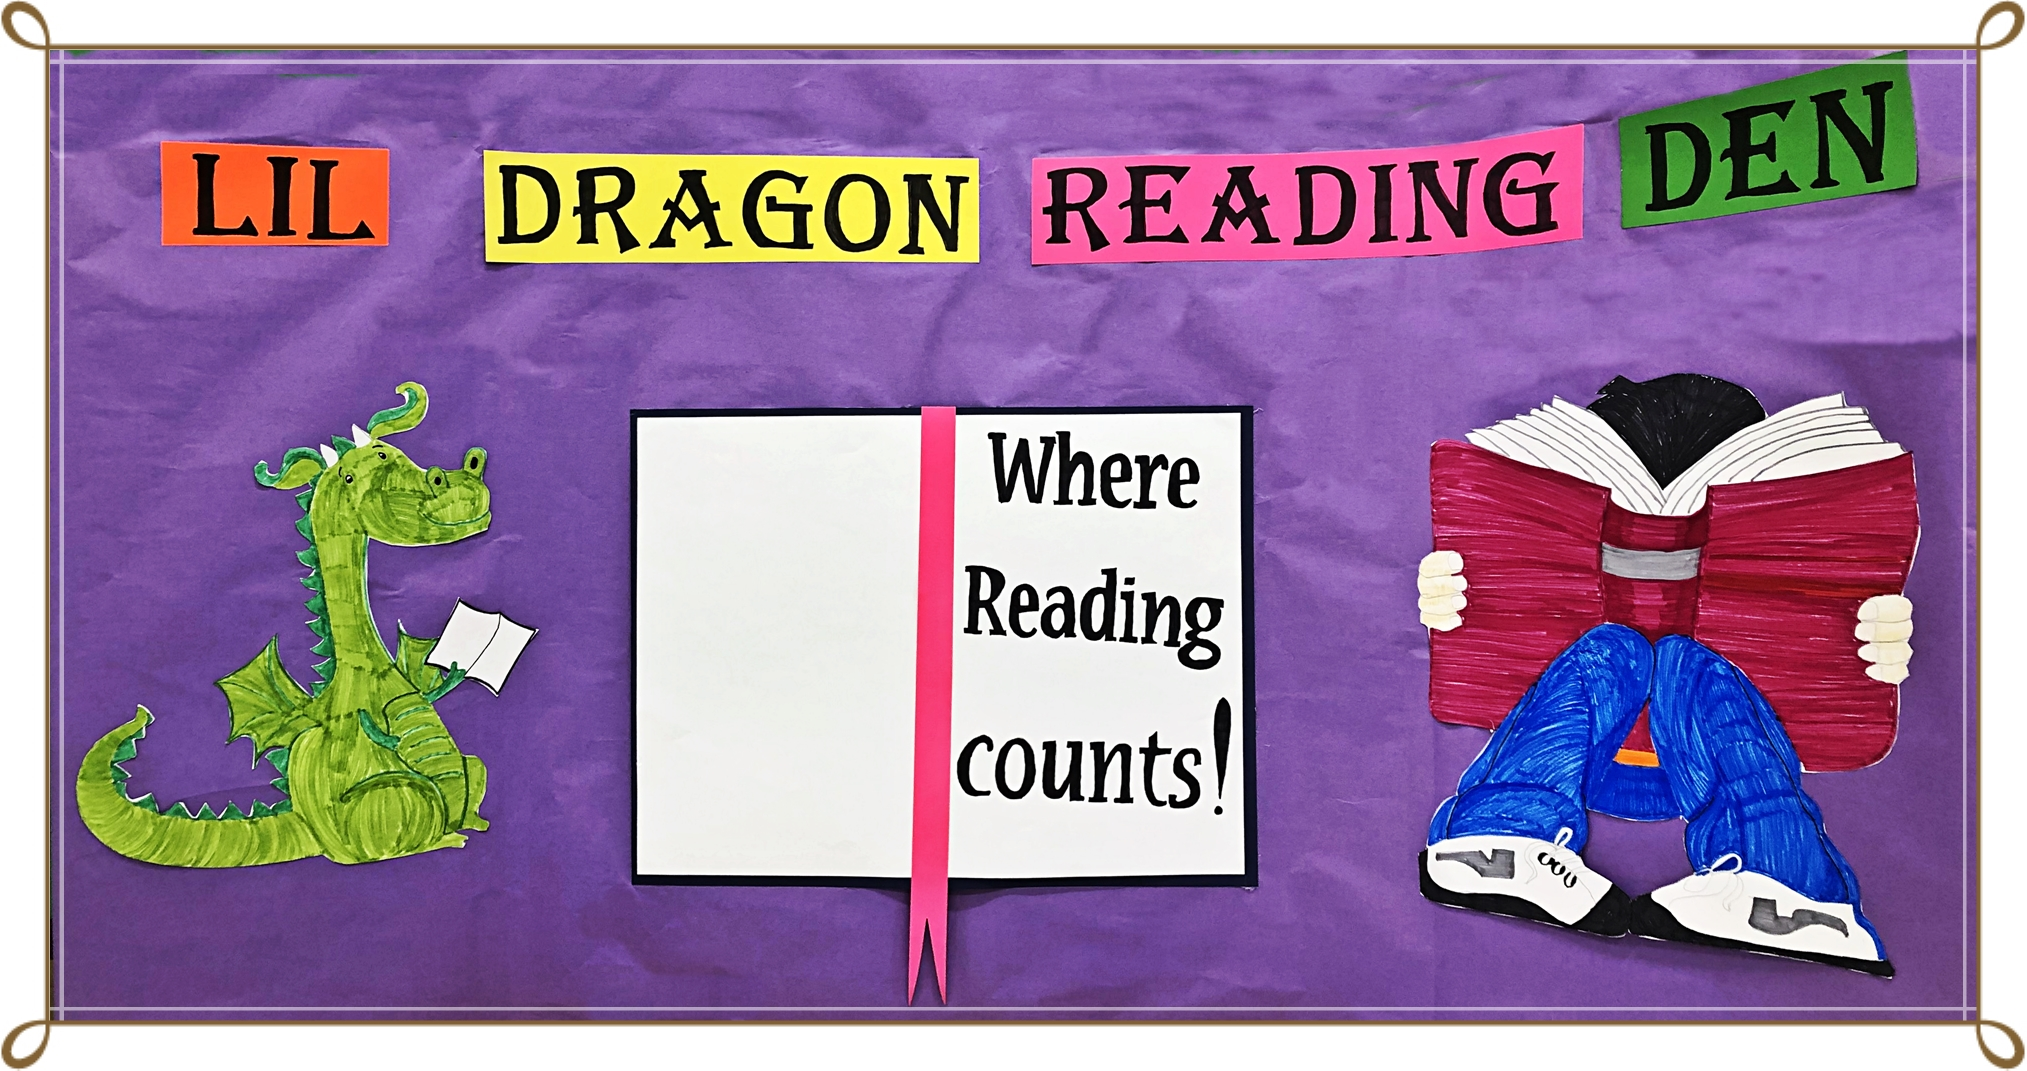 Lil Dragon Reading Den